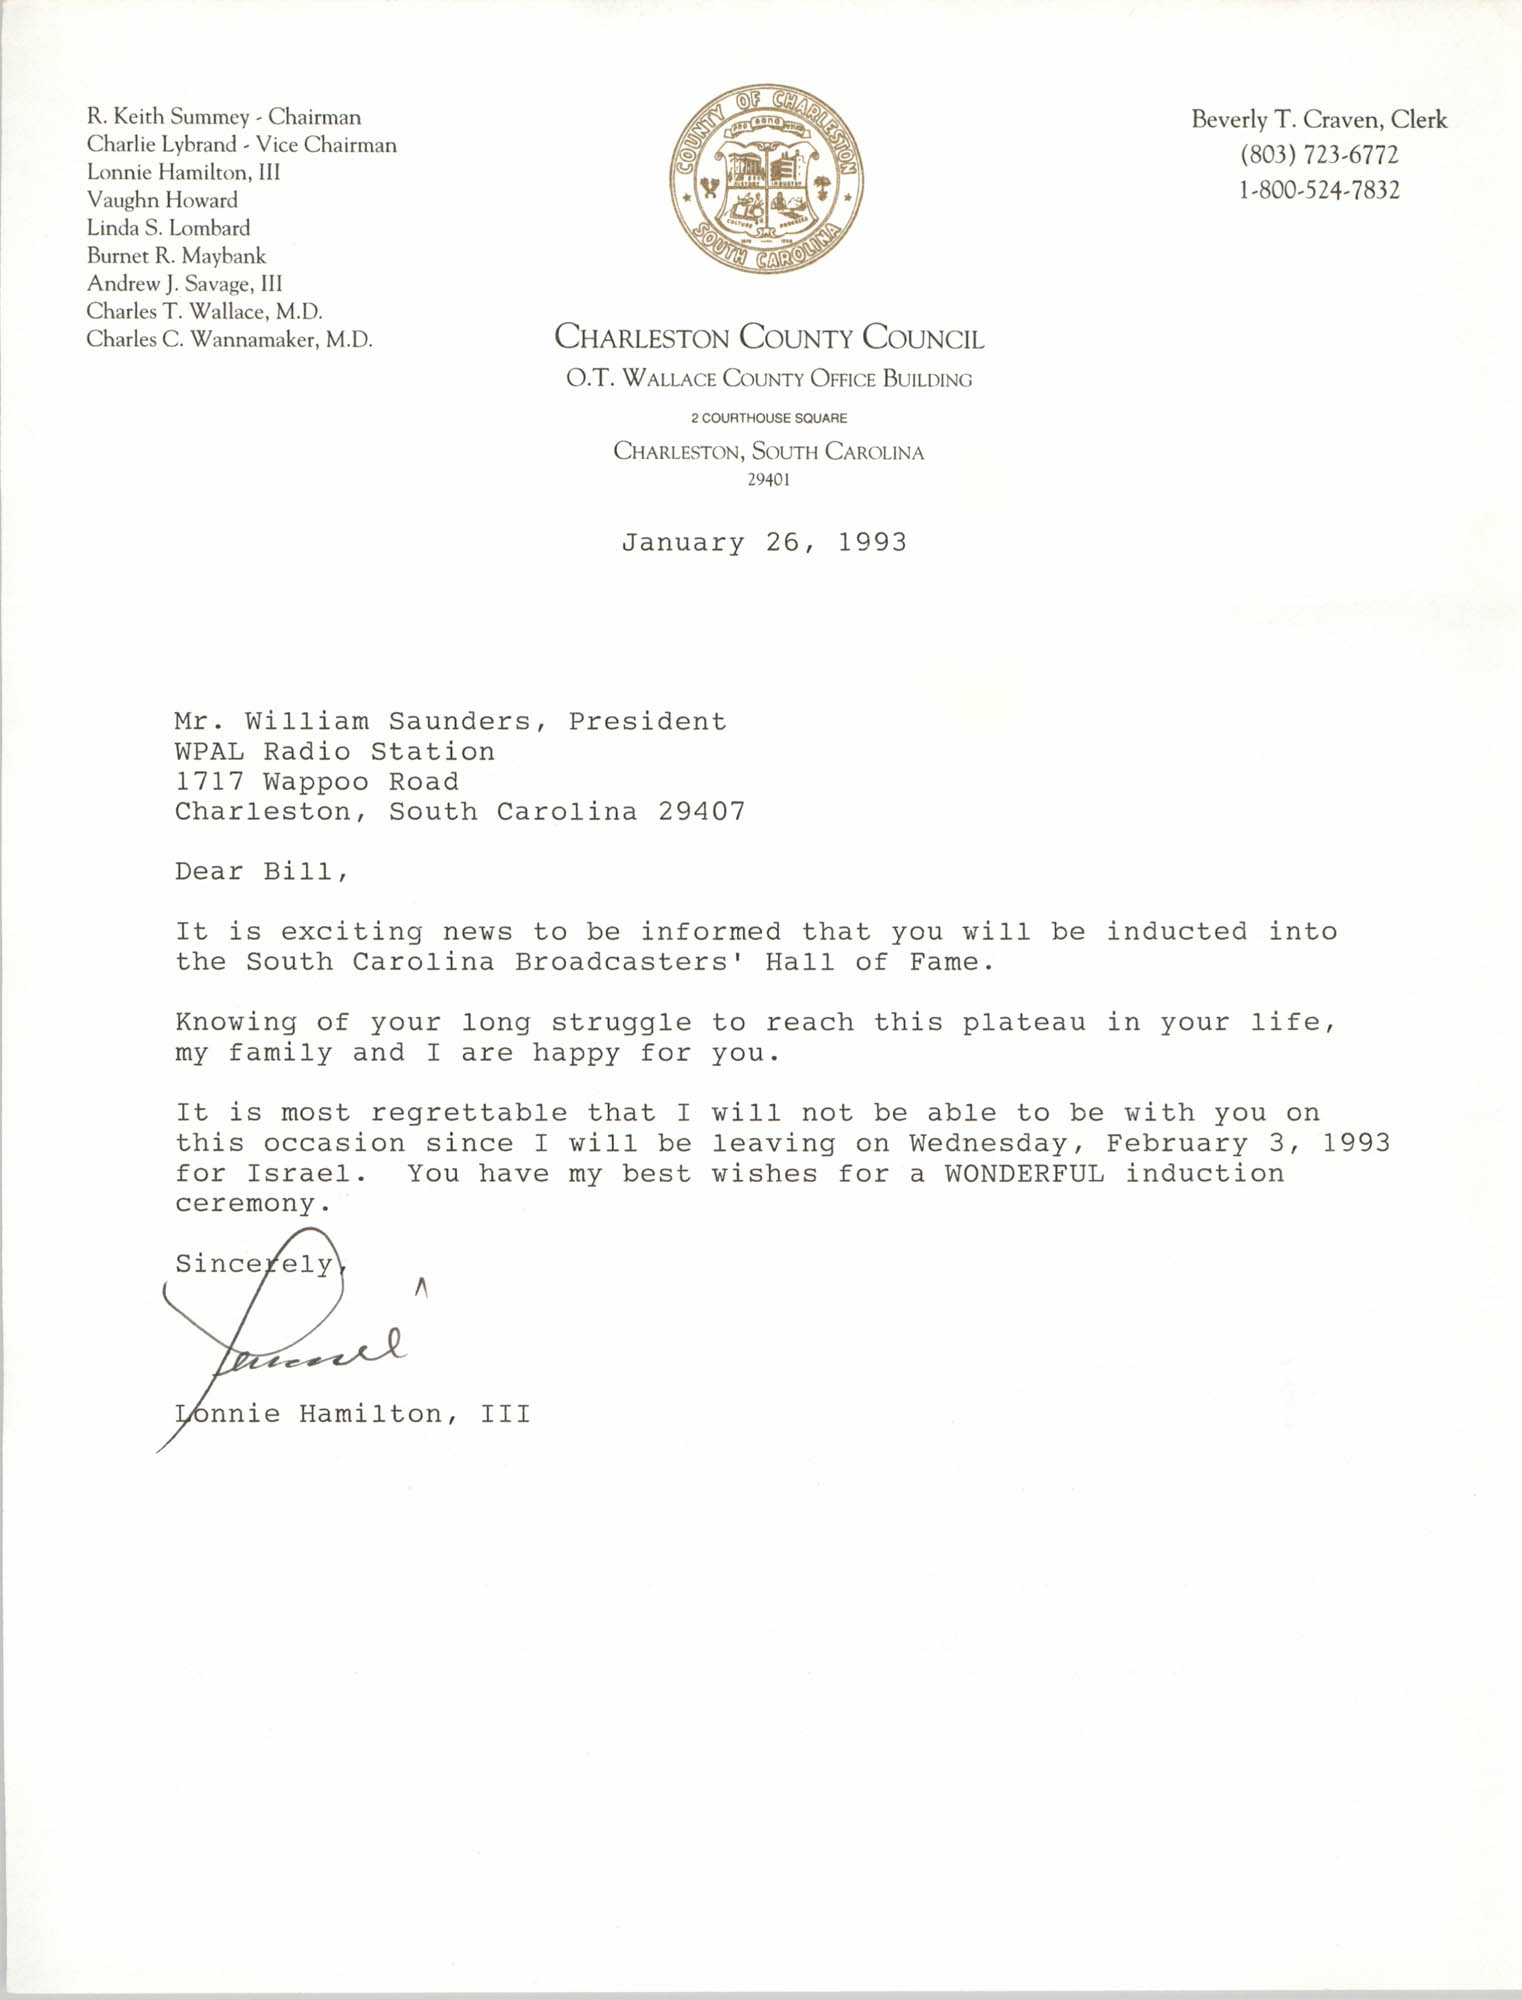 Letter from Lonnie Hamilton, III to William Saunders, January 26, 1993